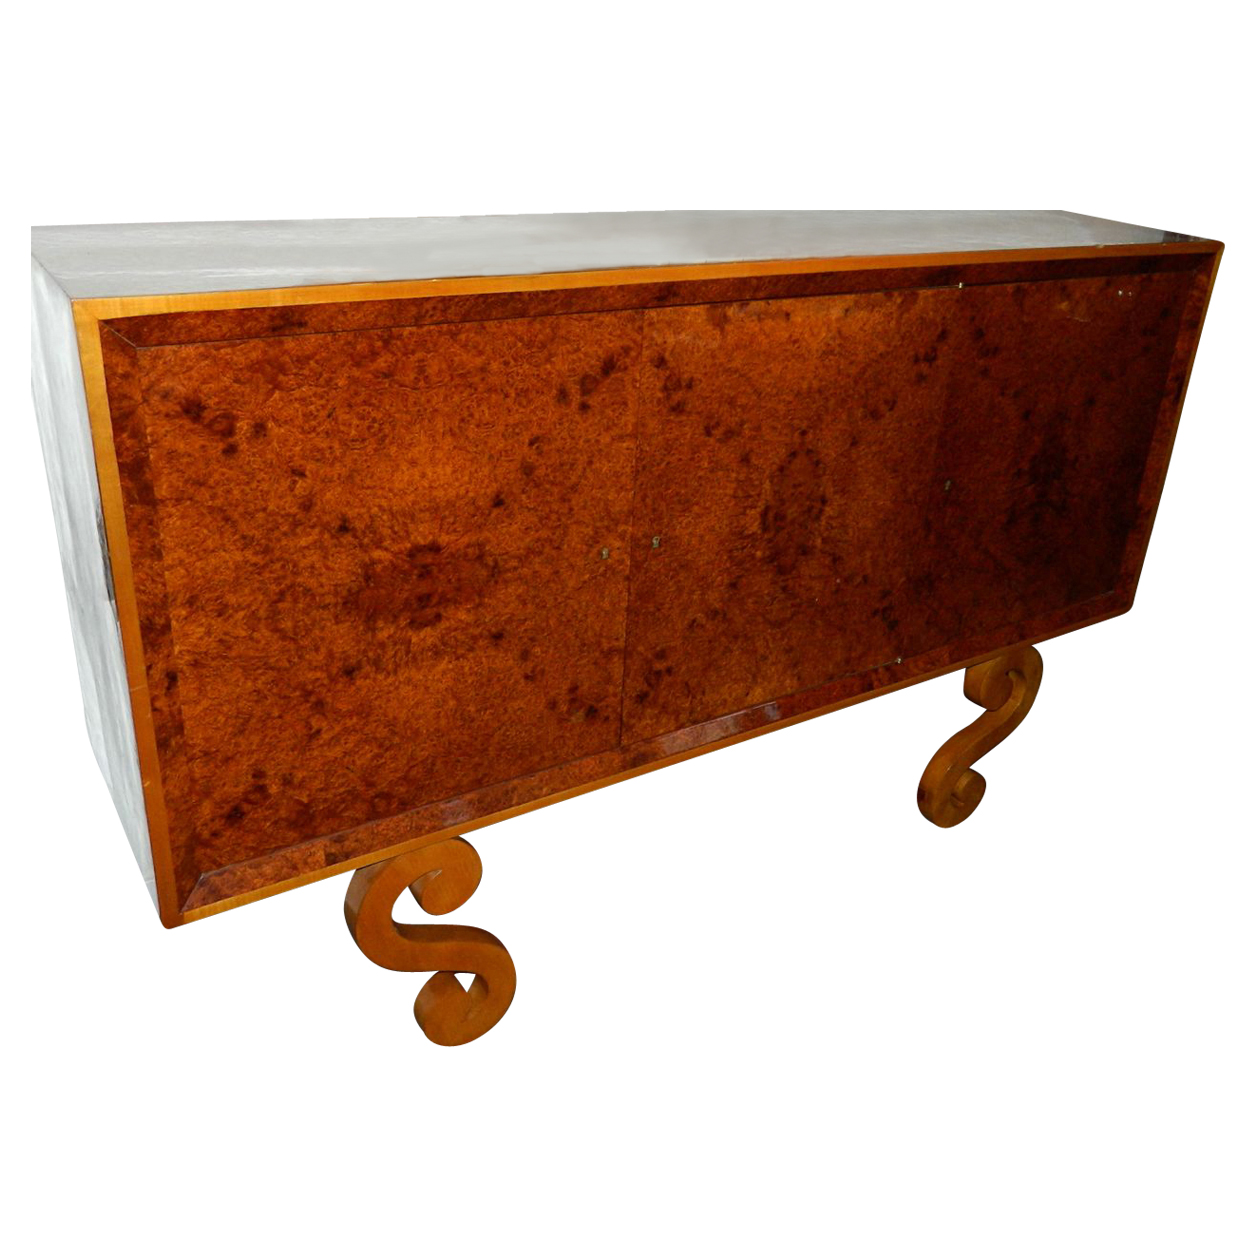 Fabulous Original Art Deco Buffet Spectacular!